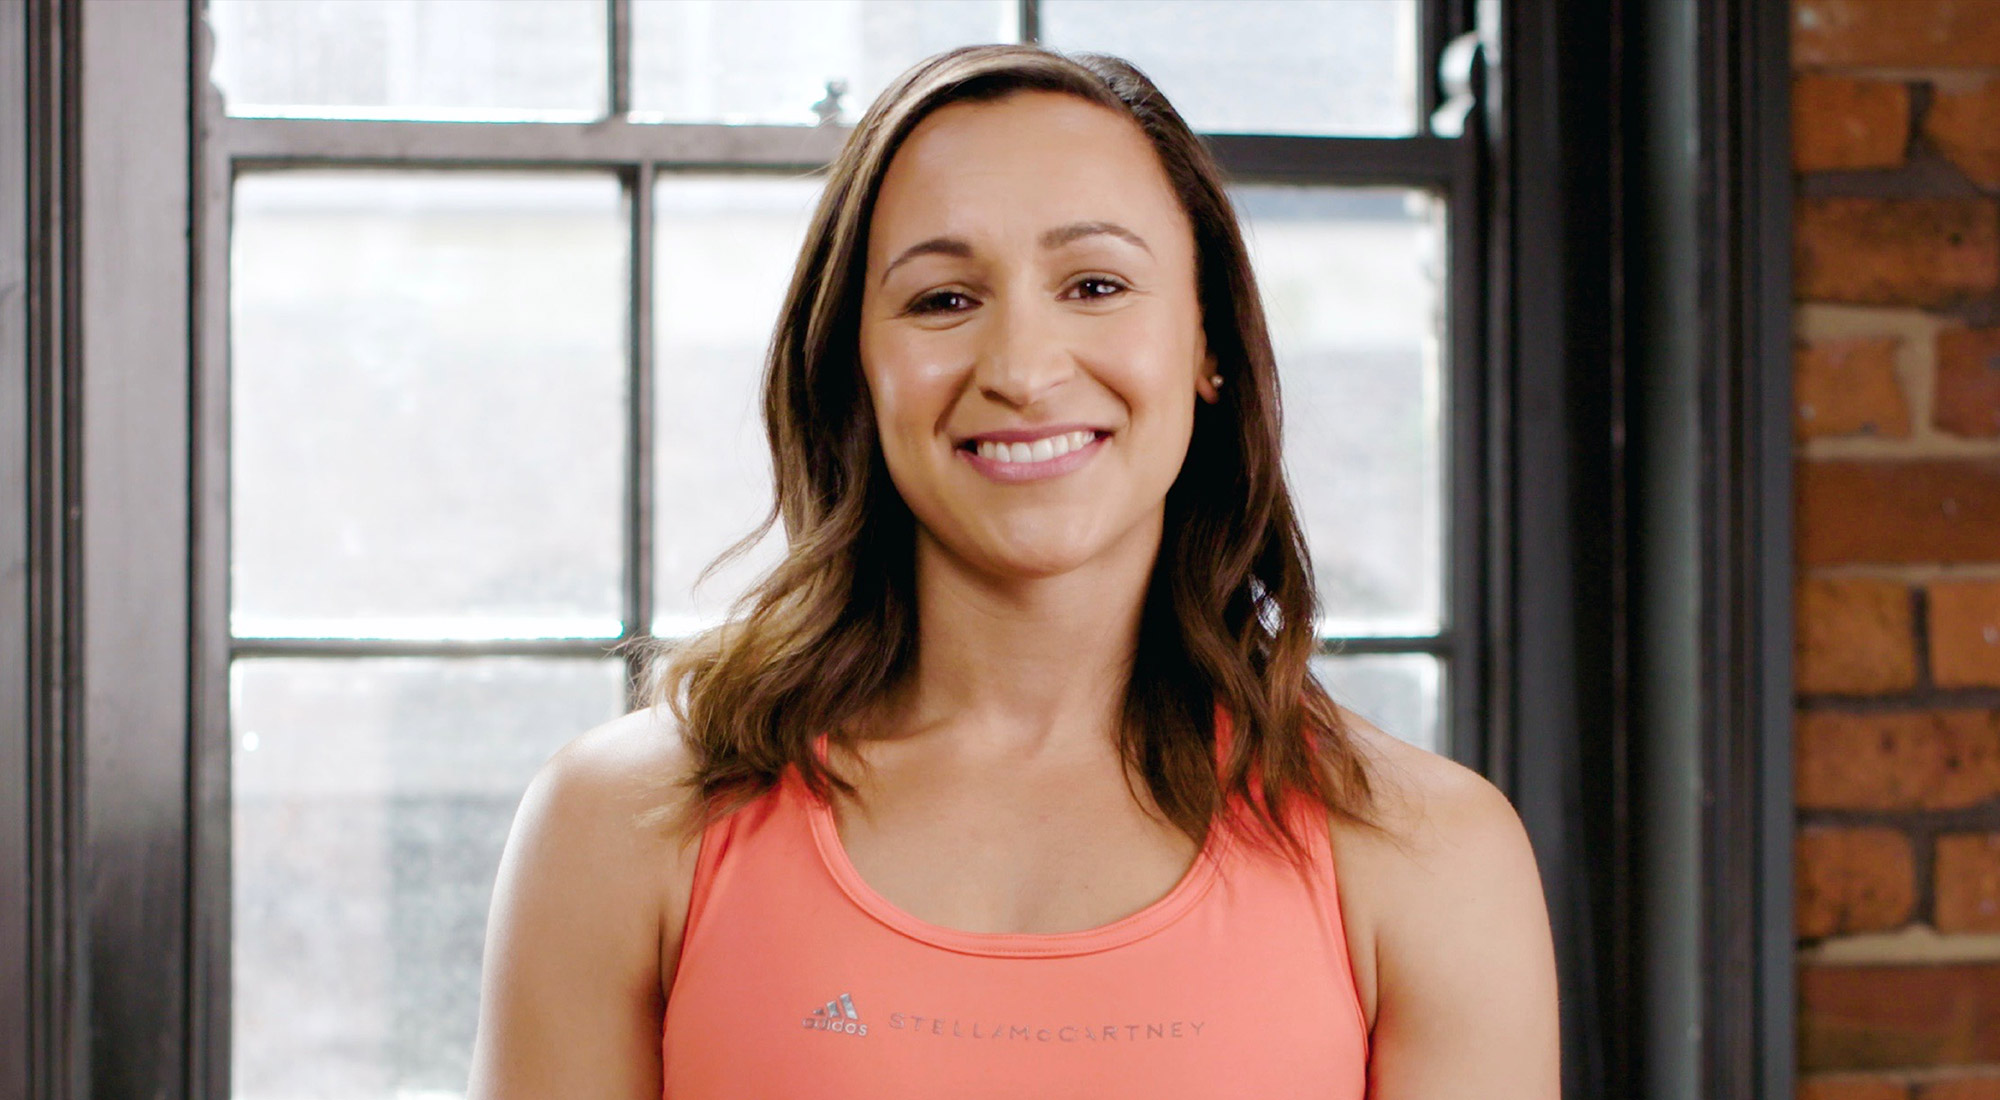 Jessica Ennis-Hill, Kate Hardcastle and Tim Hollingsworth to speak at ukactive National Summit